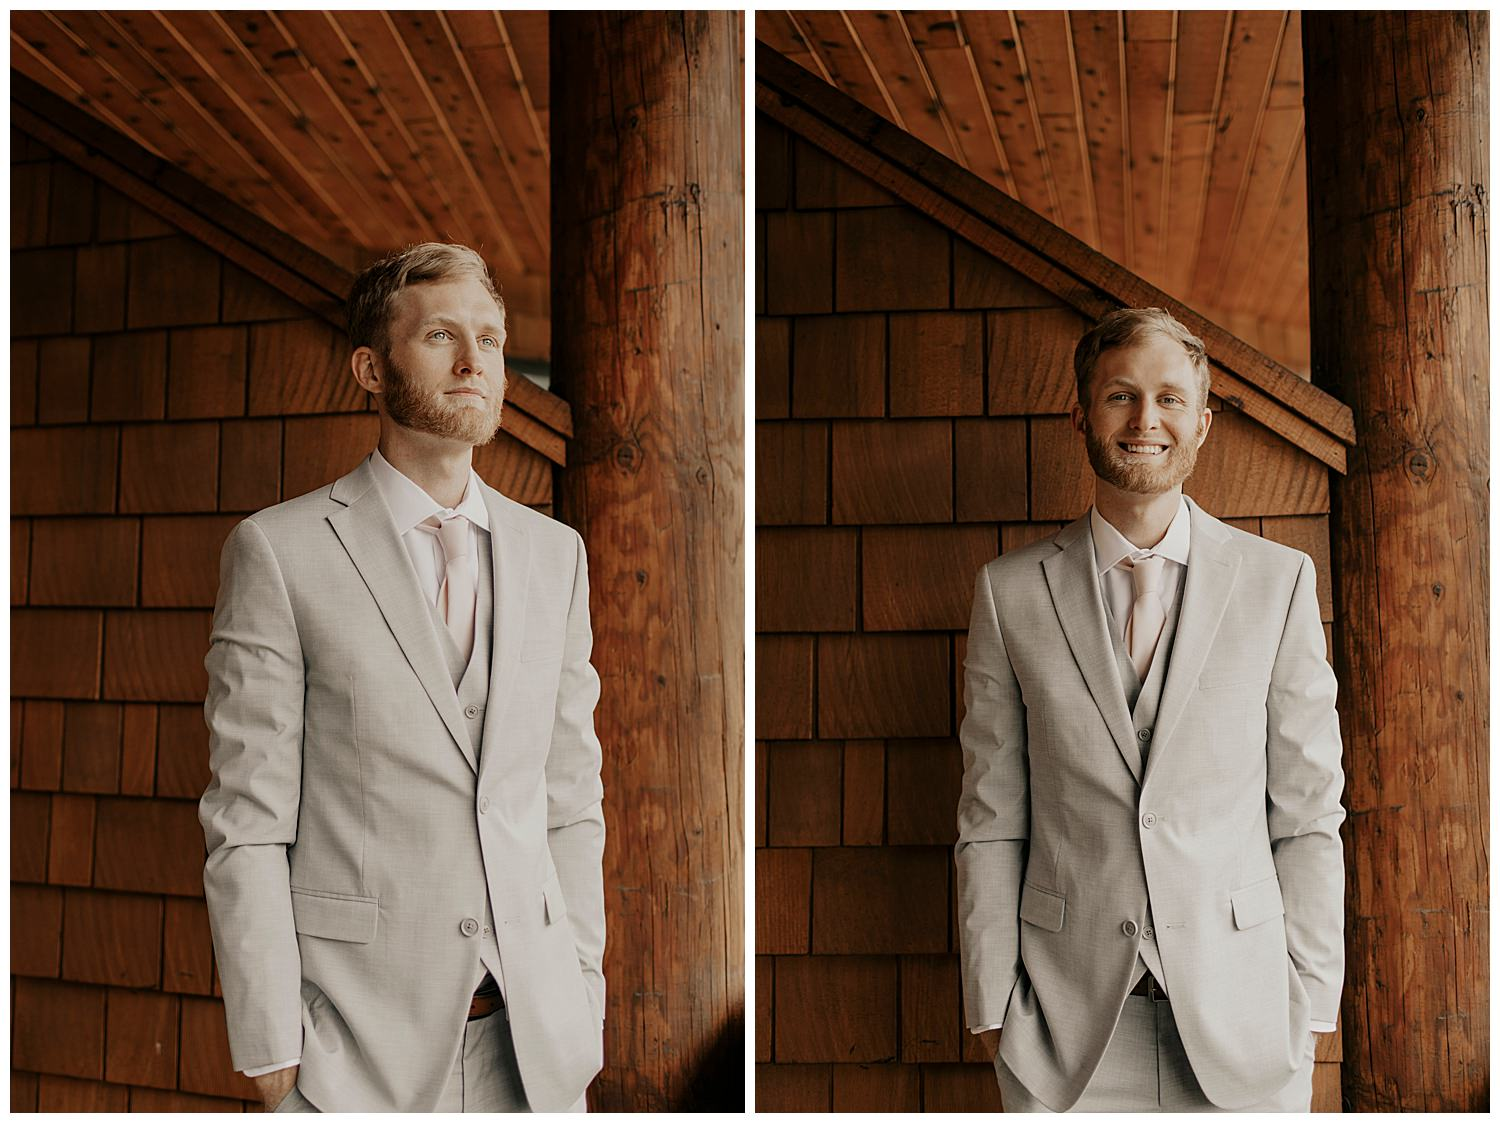 groom in suit on wedding day